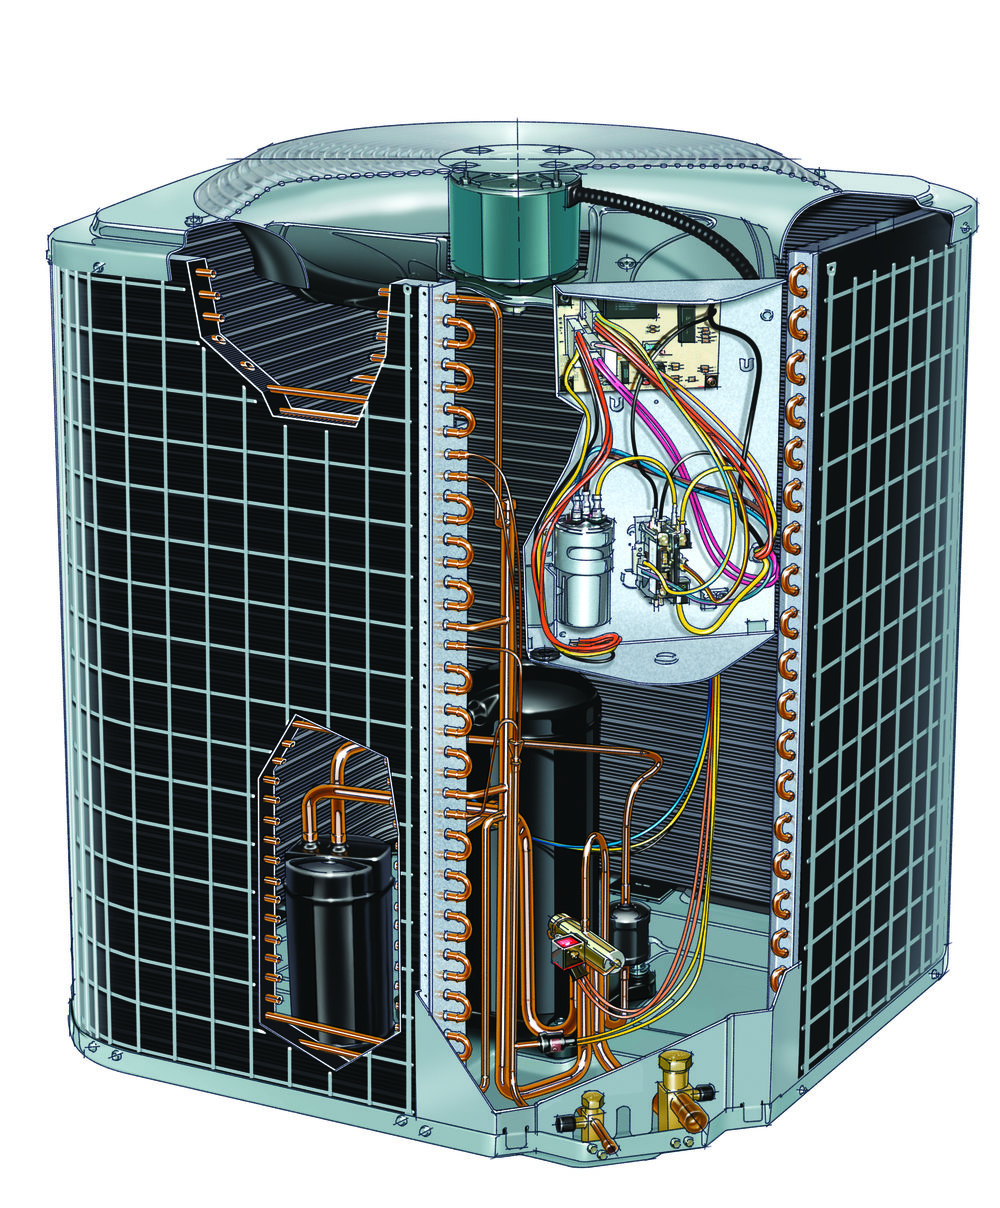 N-Series Heat Pump Cut-away